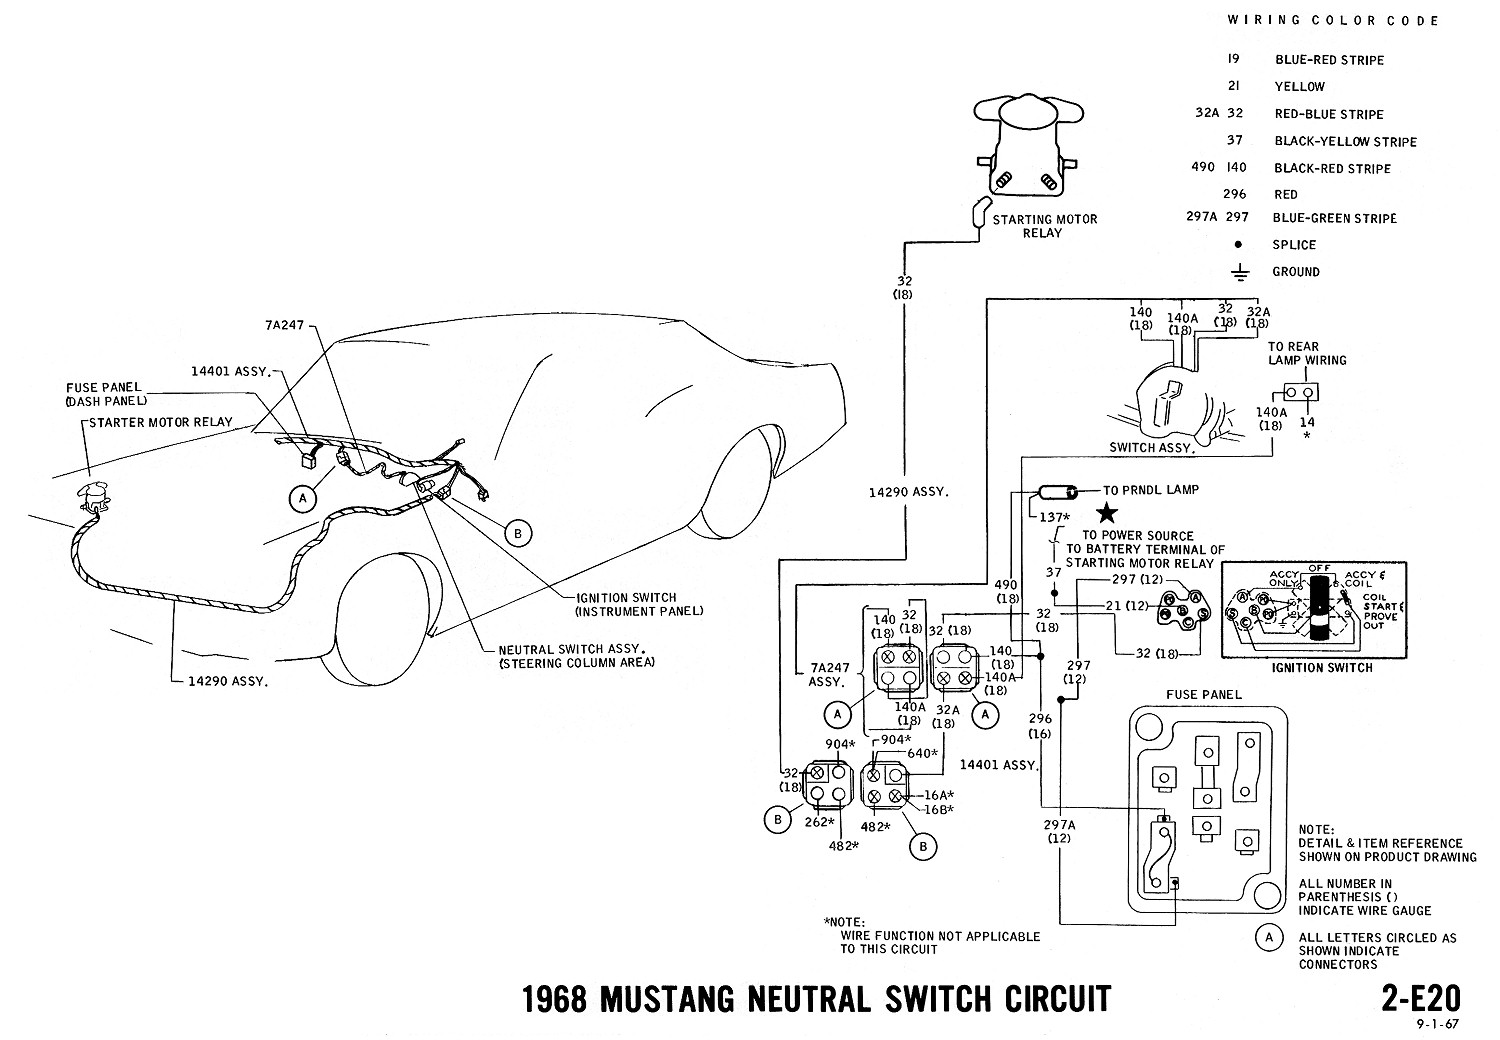 1965 mustang ignition coil wiring diagram for rv ac unit 1968 diagrams evolving software